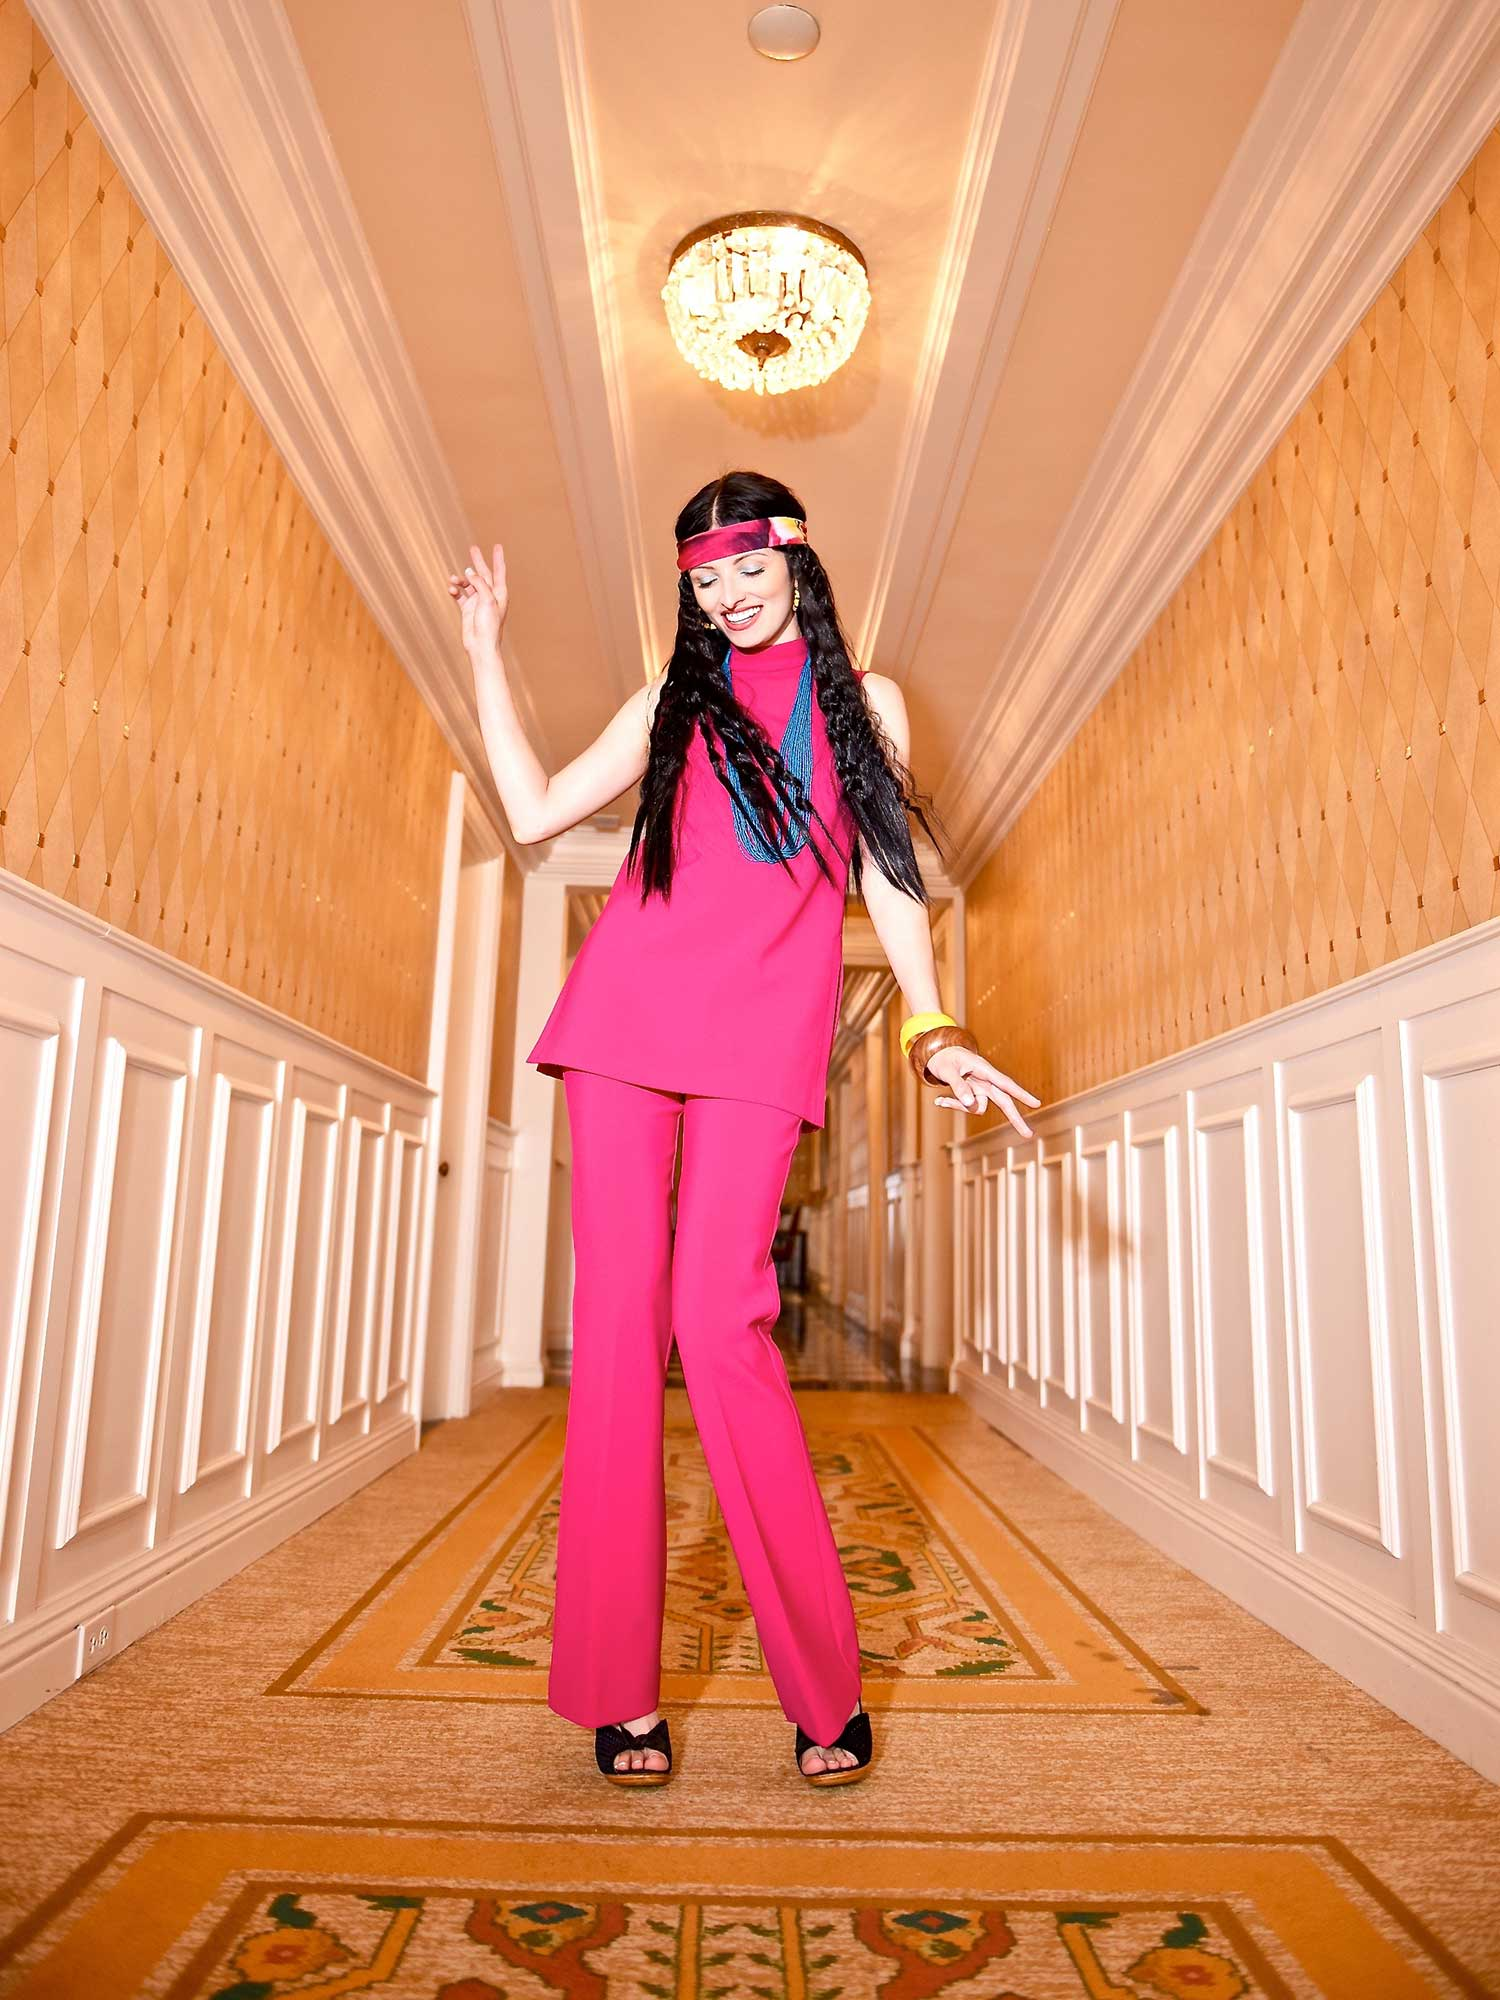 Jenna-Pilant-Lucky-Little-Mustardseed-La-Valencia-Hotel-Hot-Pink-90th-Celebration-The-Pink-Lady-70s-5